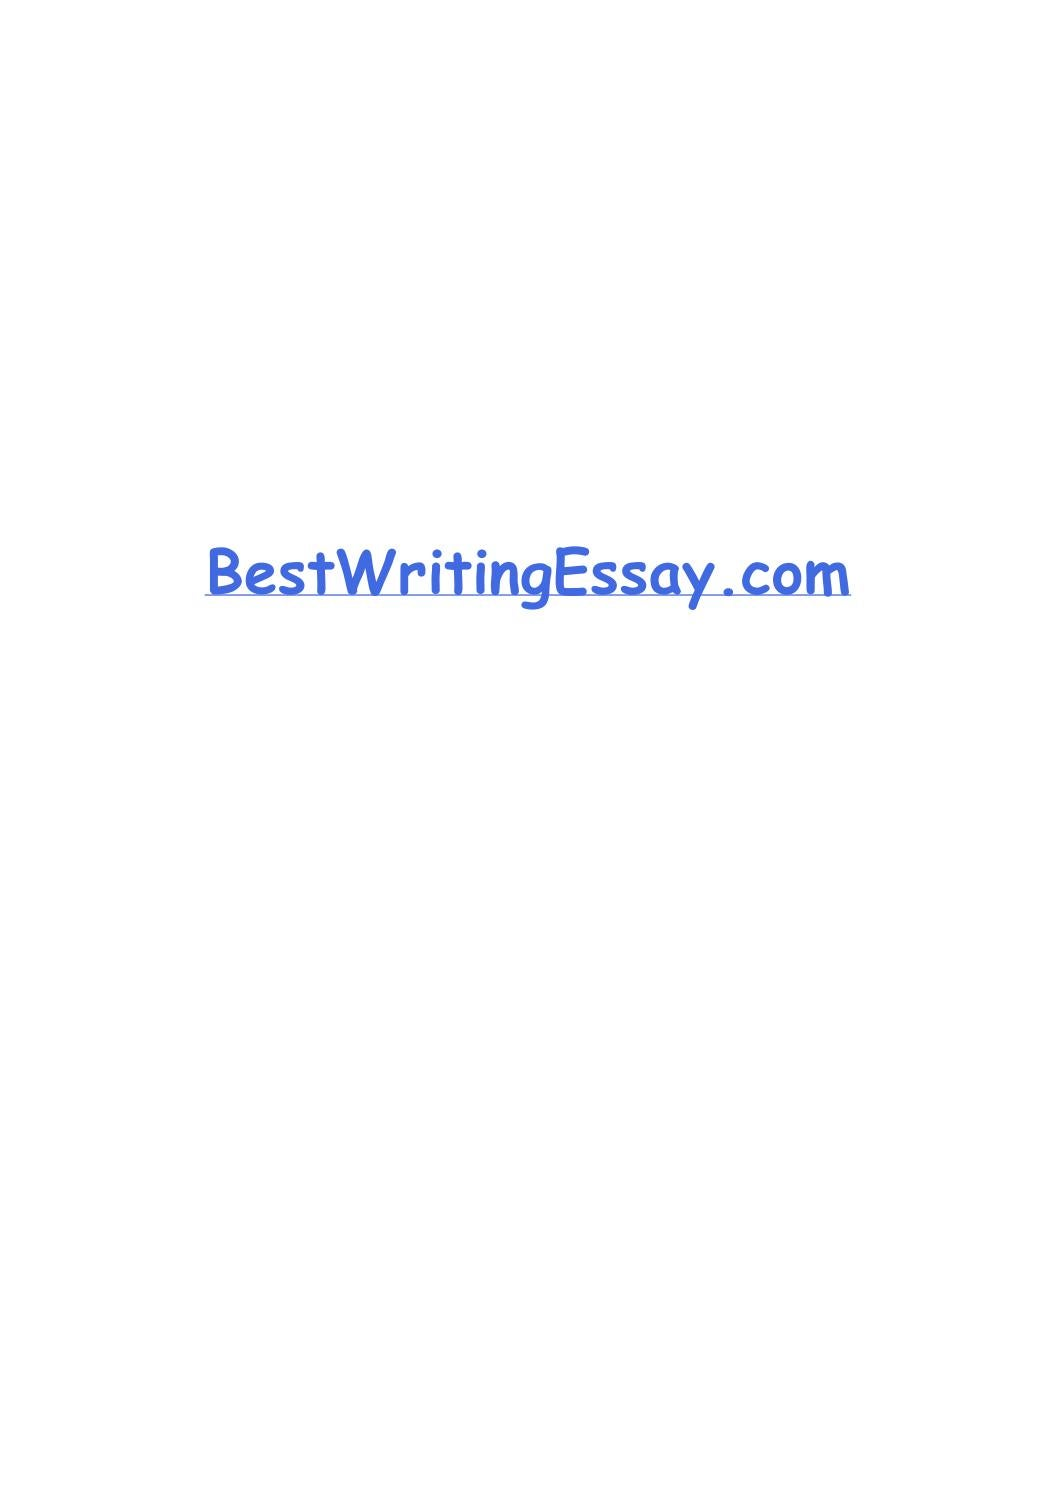 Resume writing services new jersey